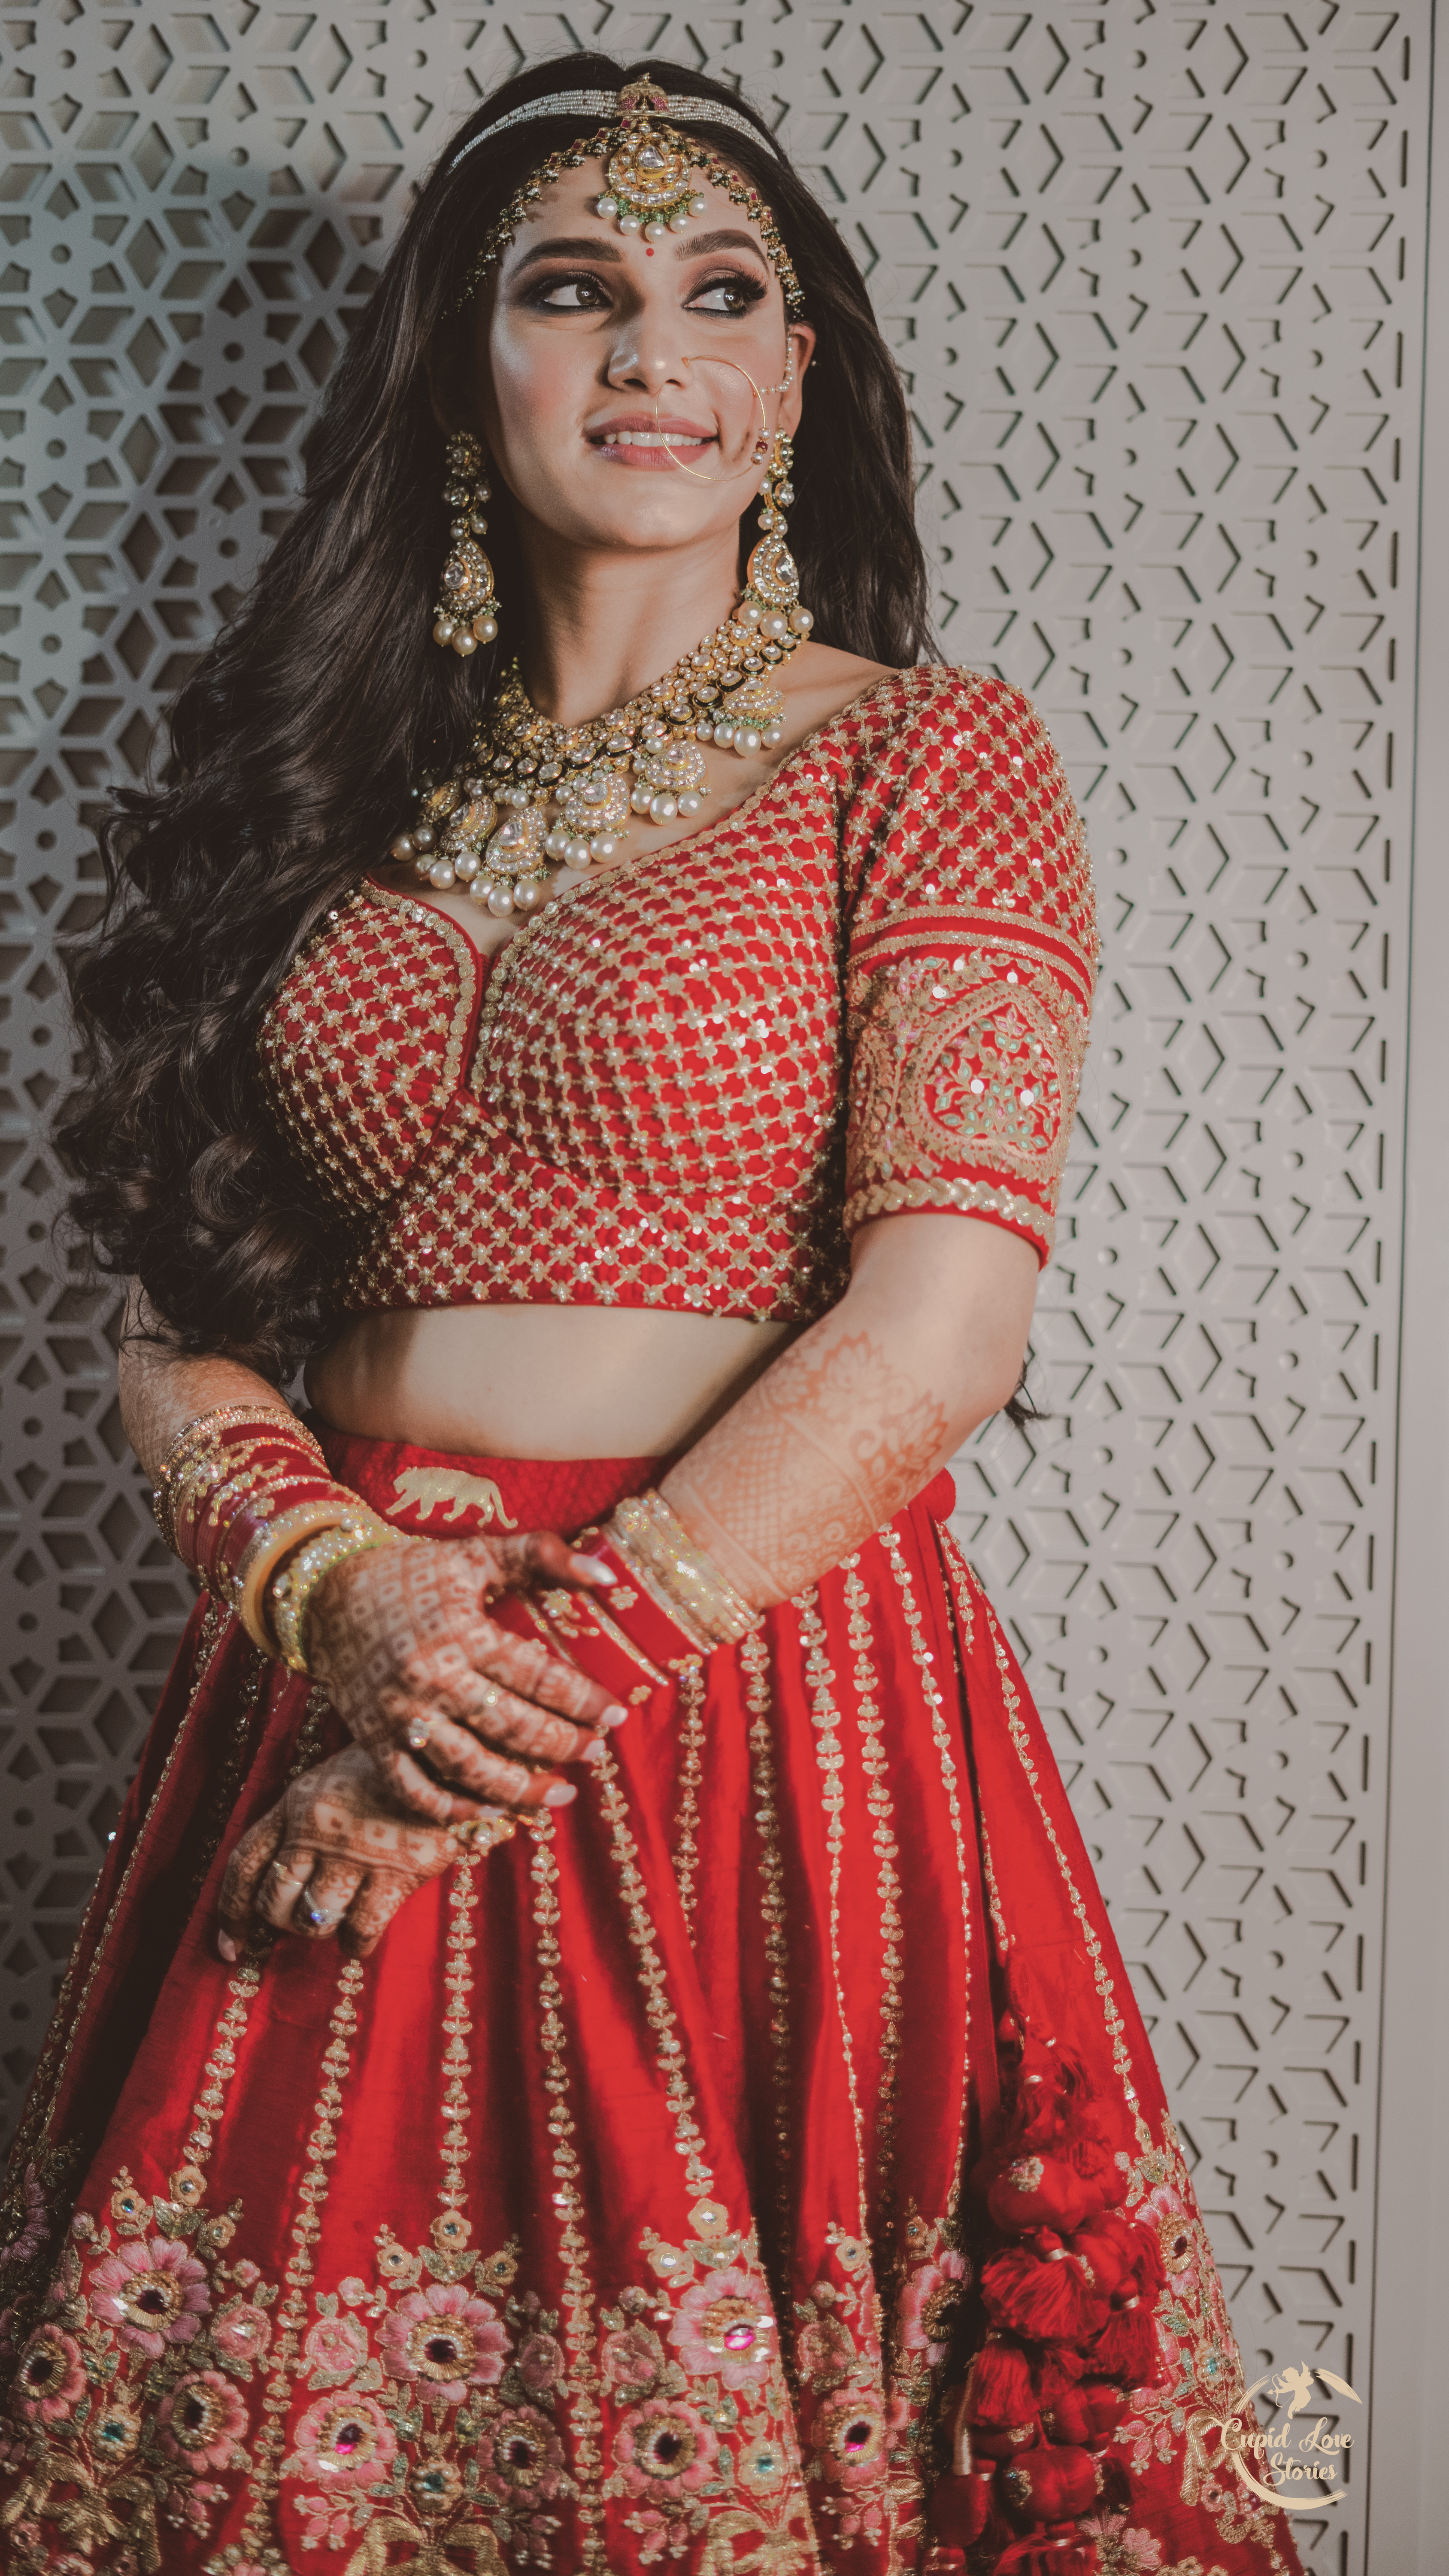 Aesthetic photo of Indian bride